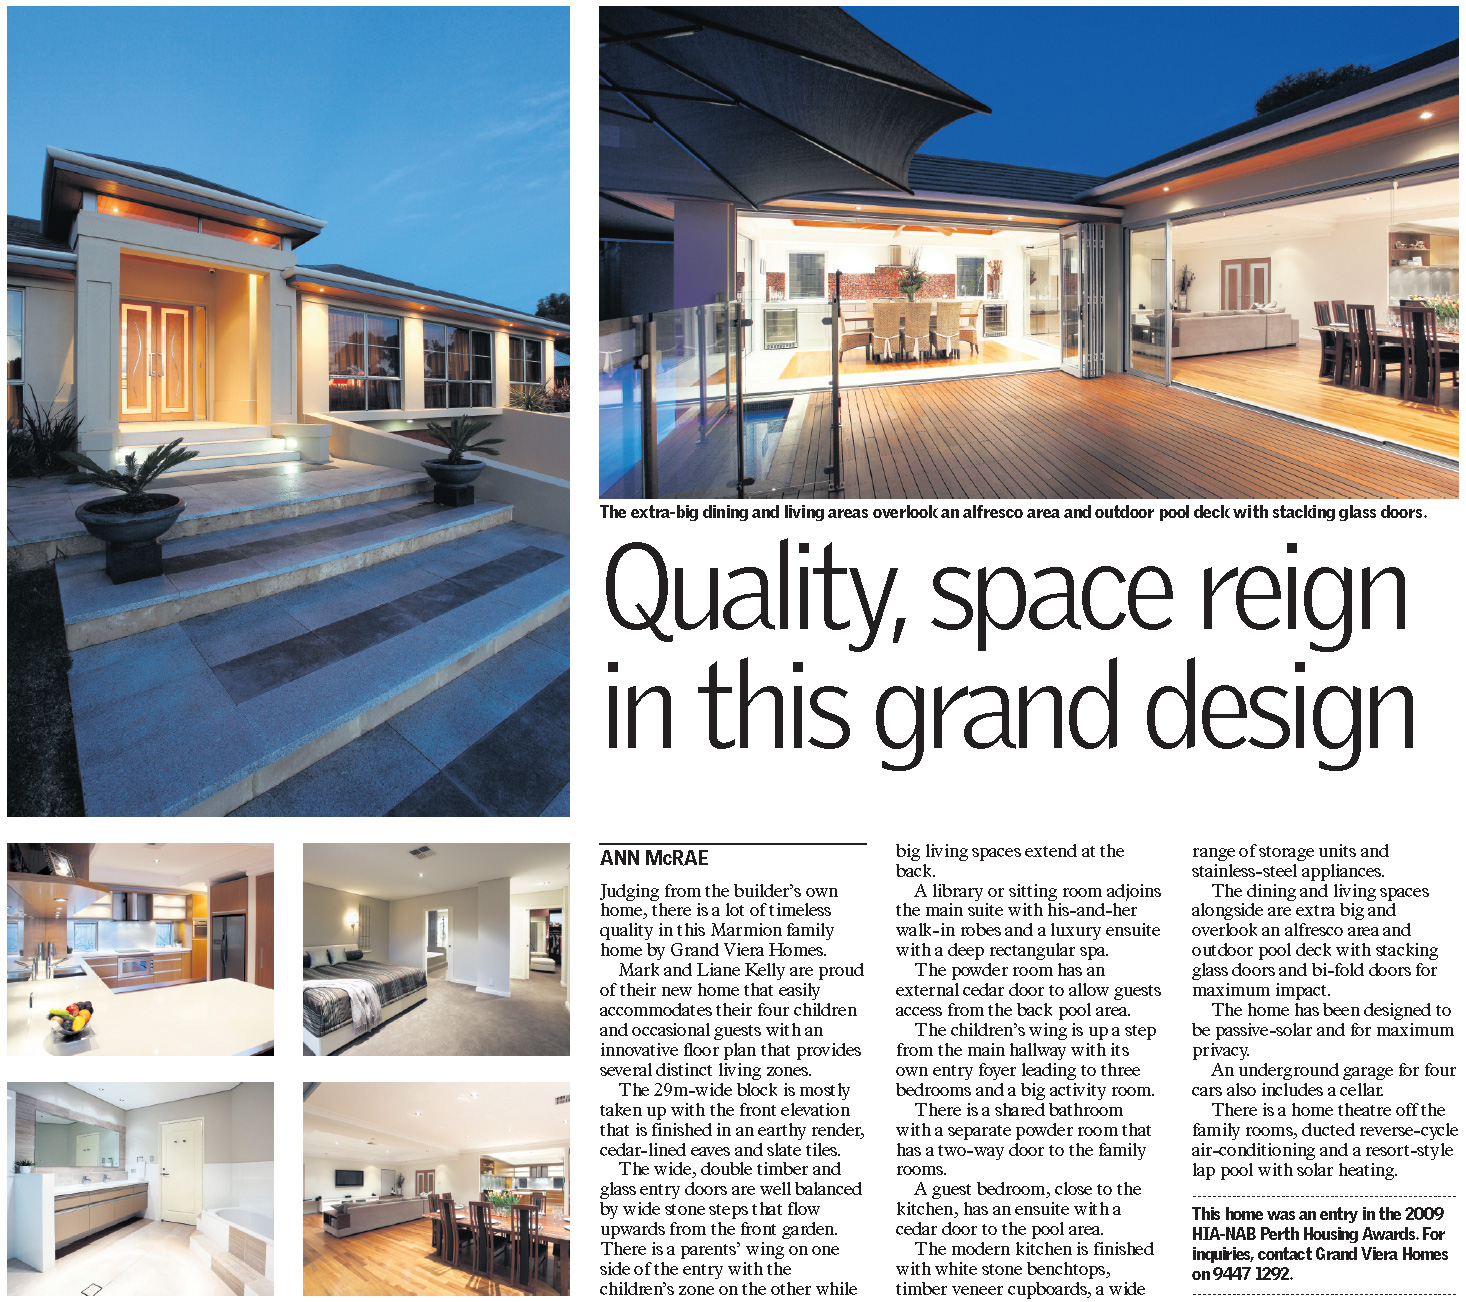 Quality space reign in this grand design grand viera homes for Quality of space in architecture